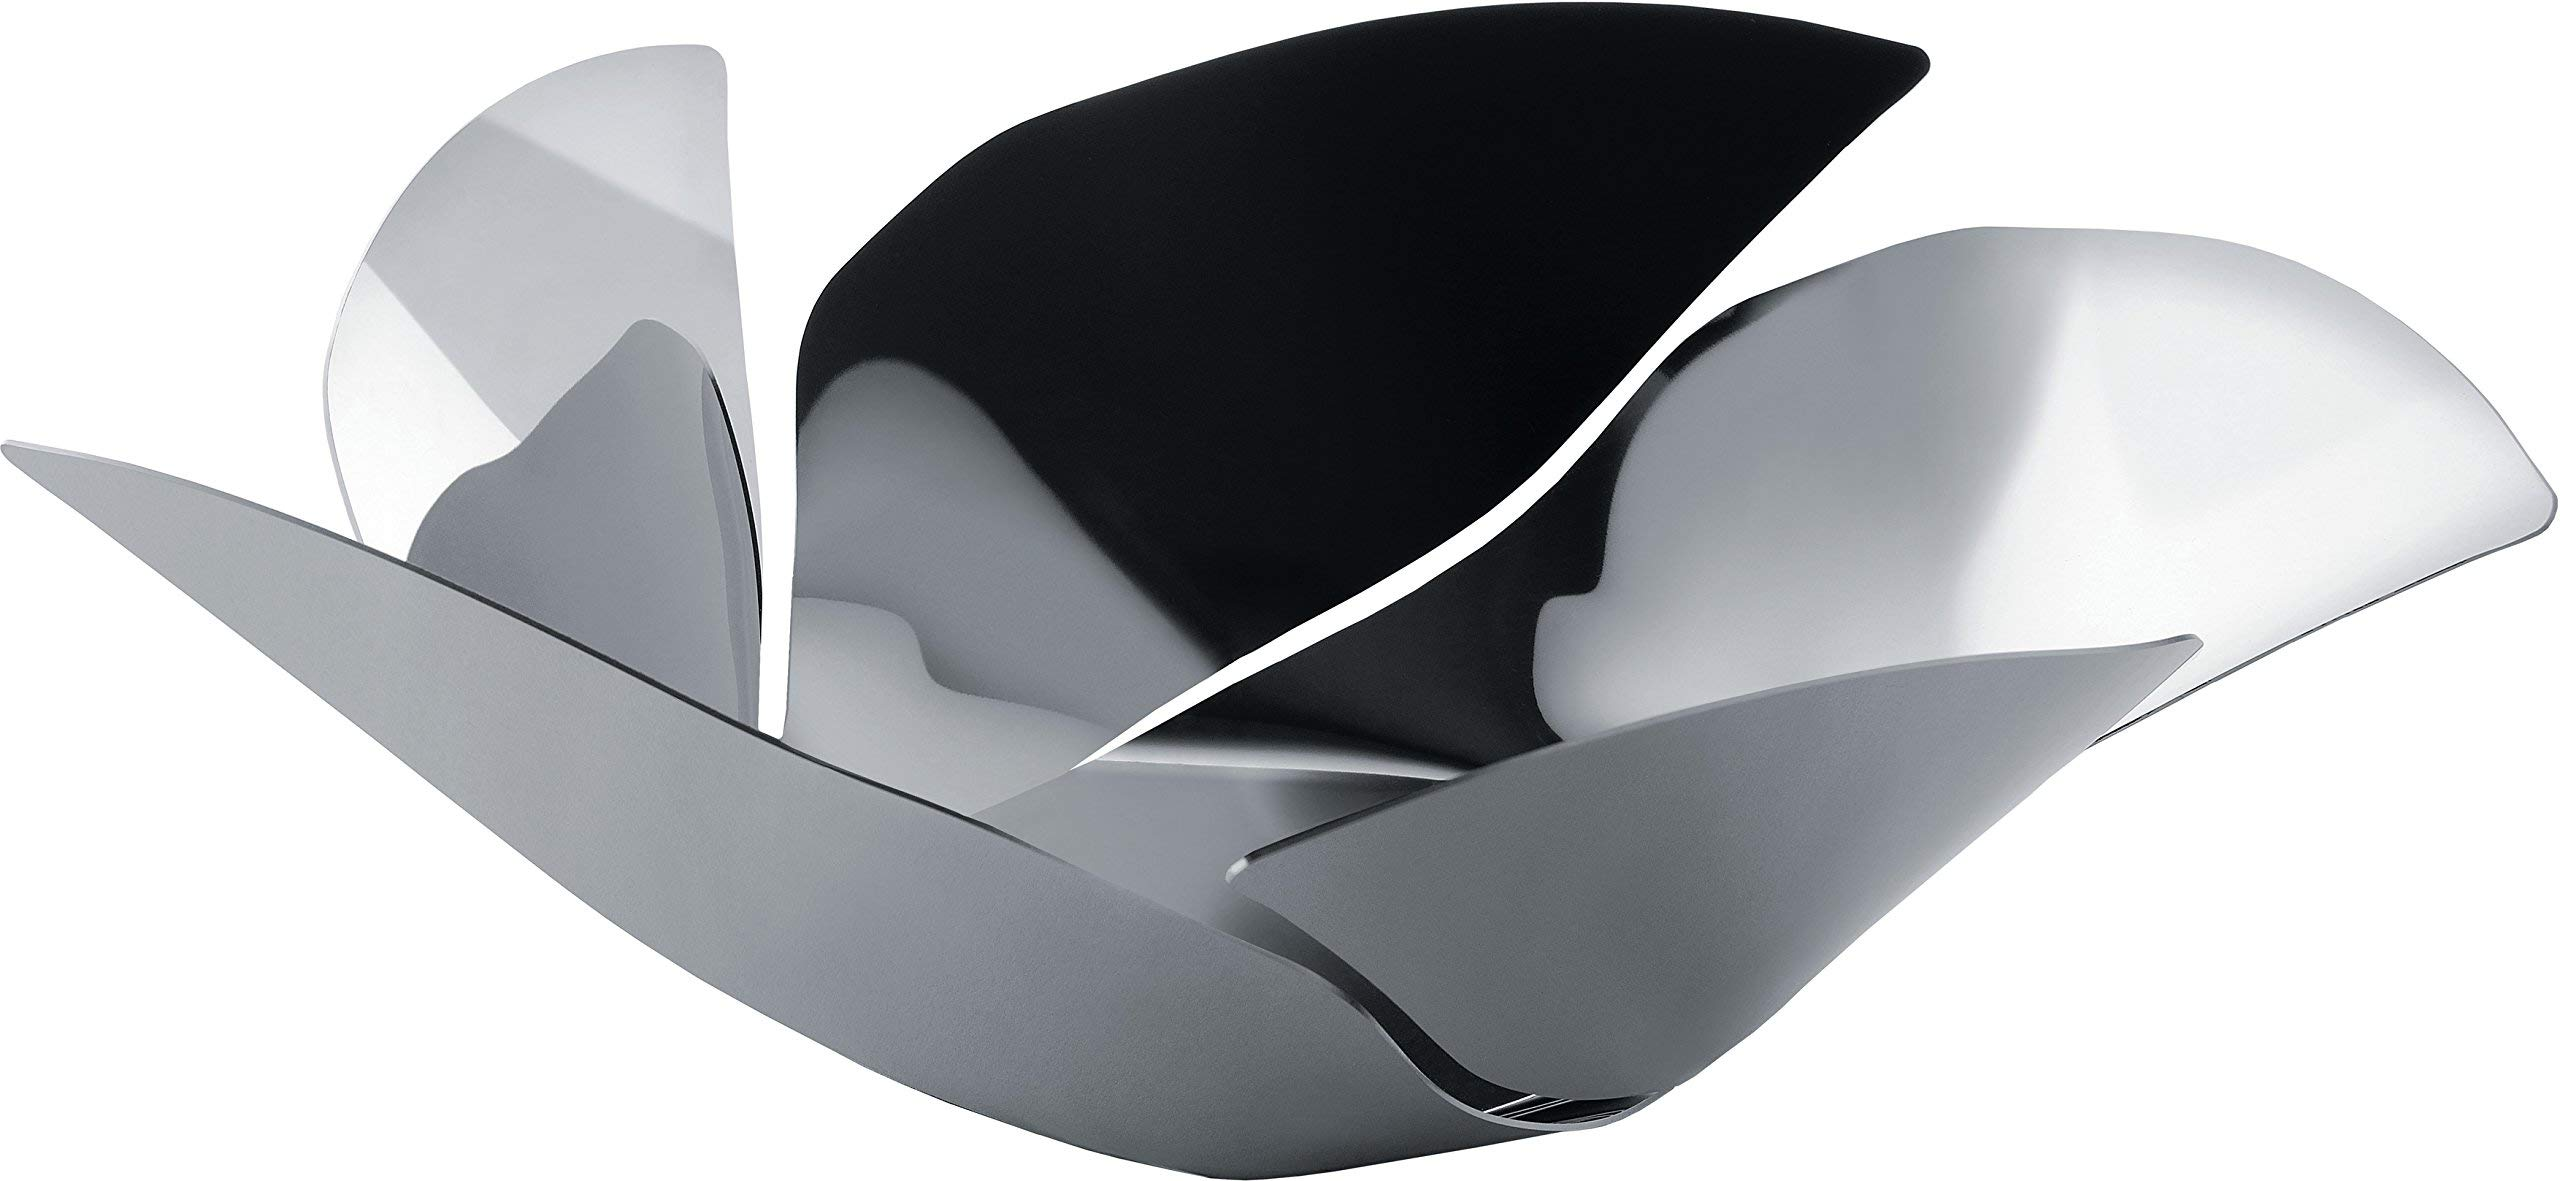 Alessi''Twist Again'' Fruit Holder in 18/10 Stainless Steel Mirror Polished, Silver